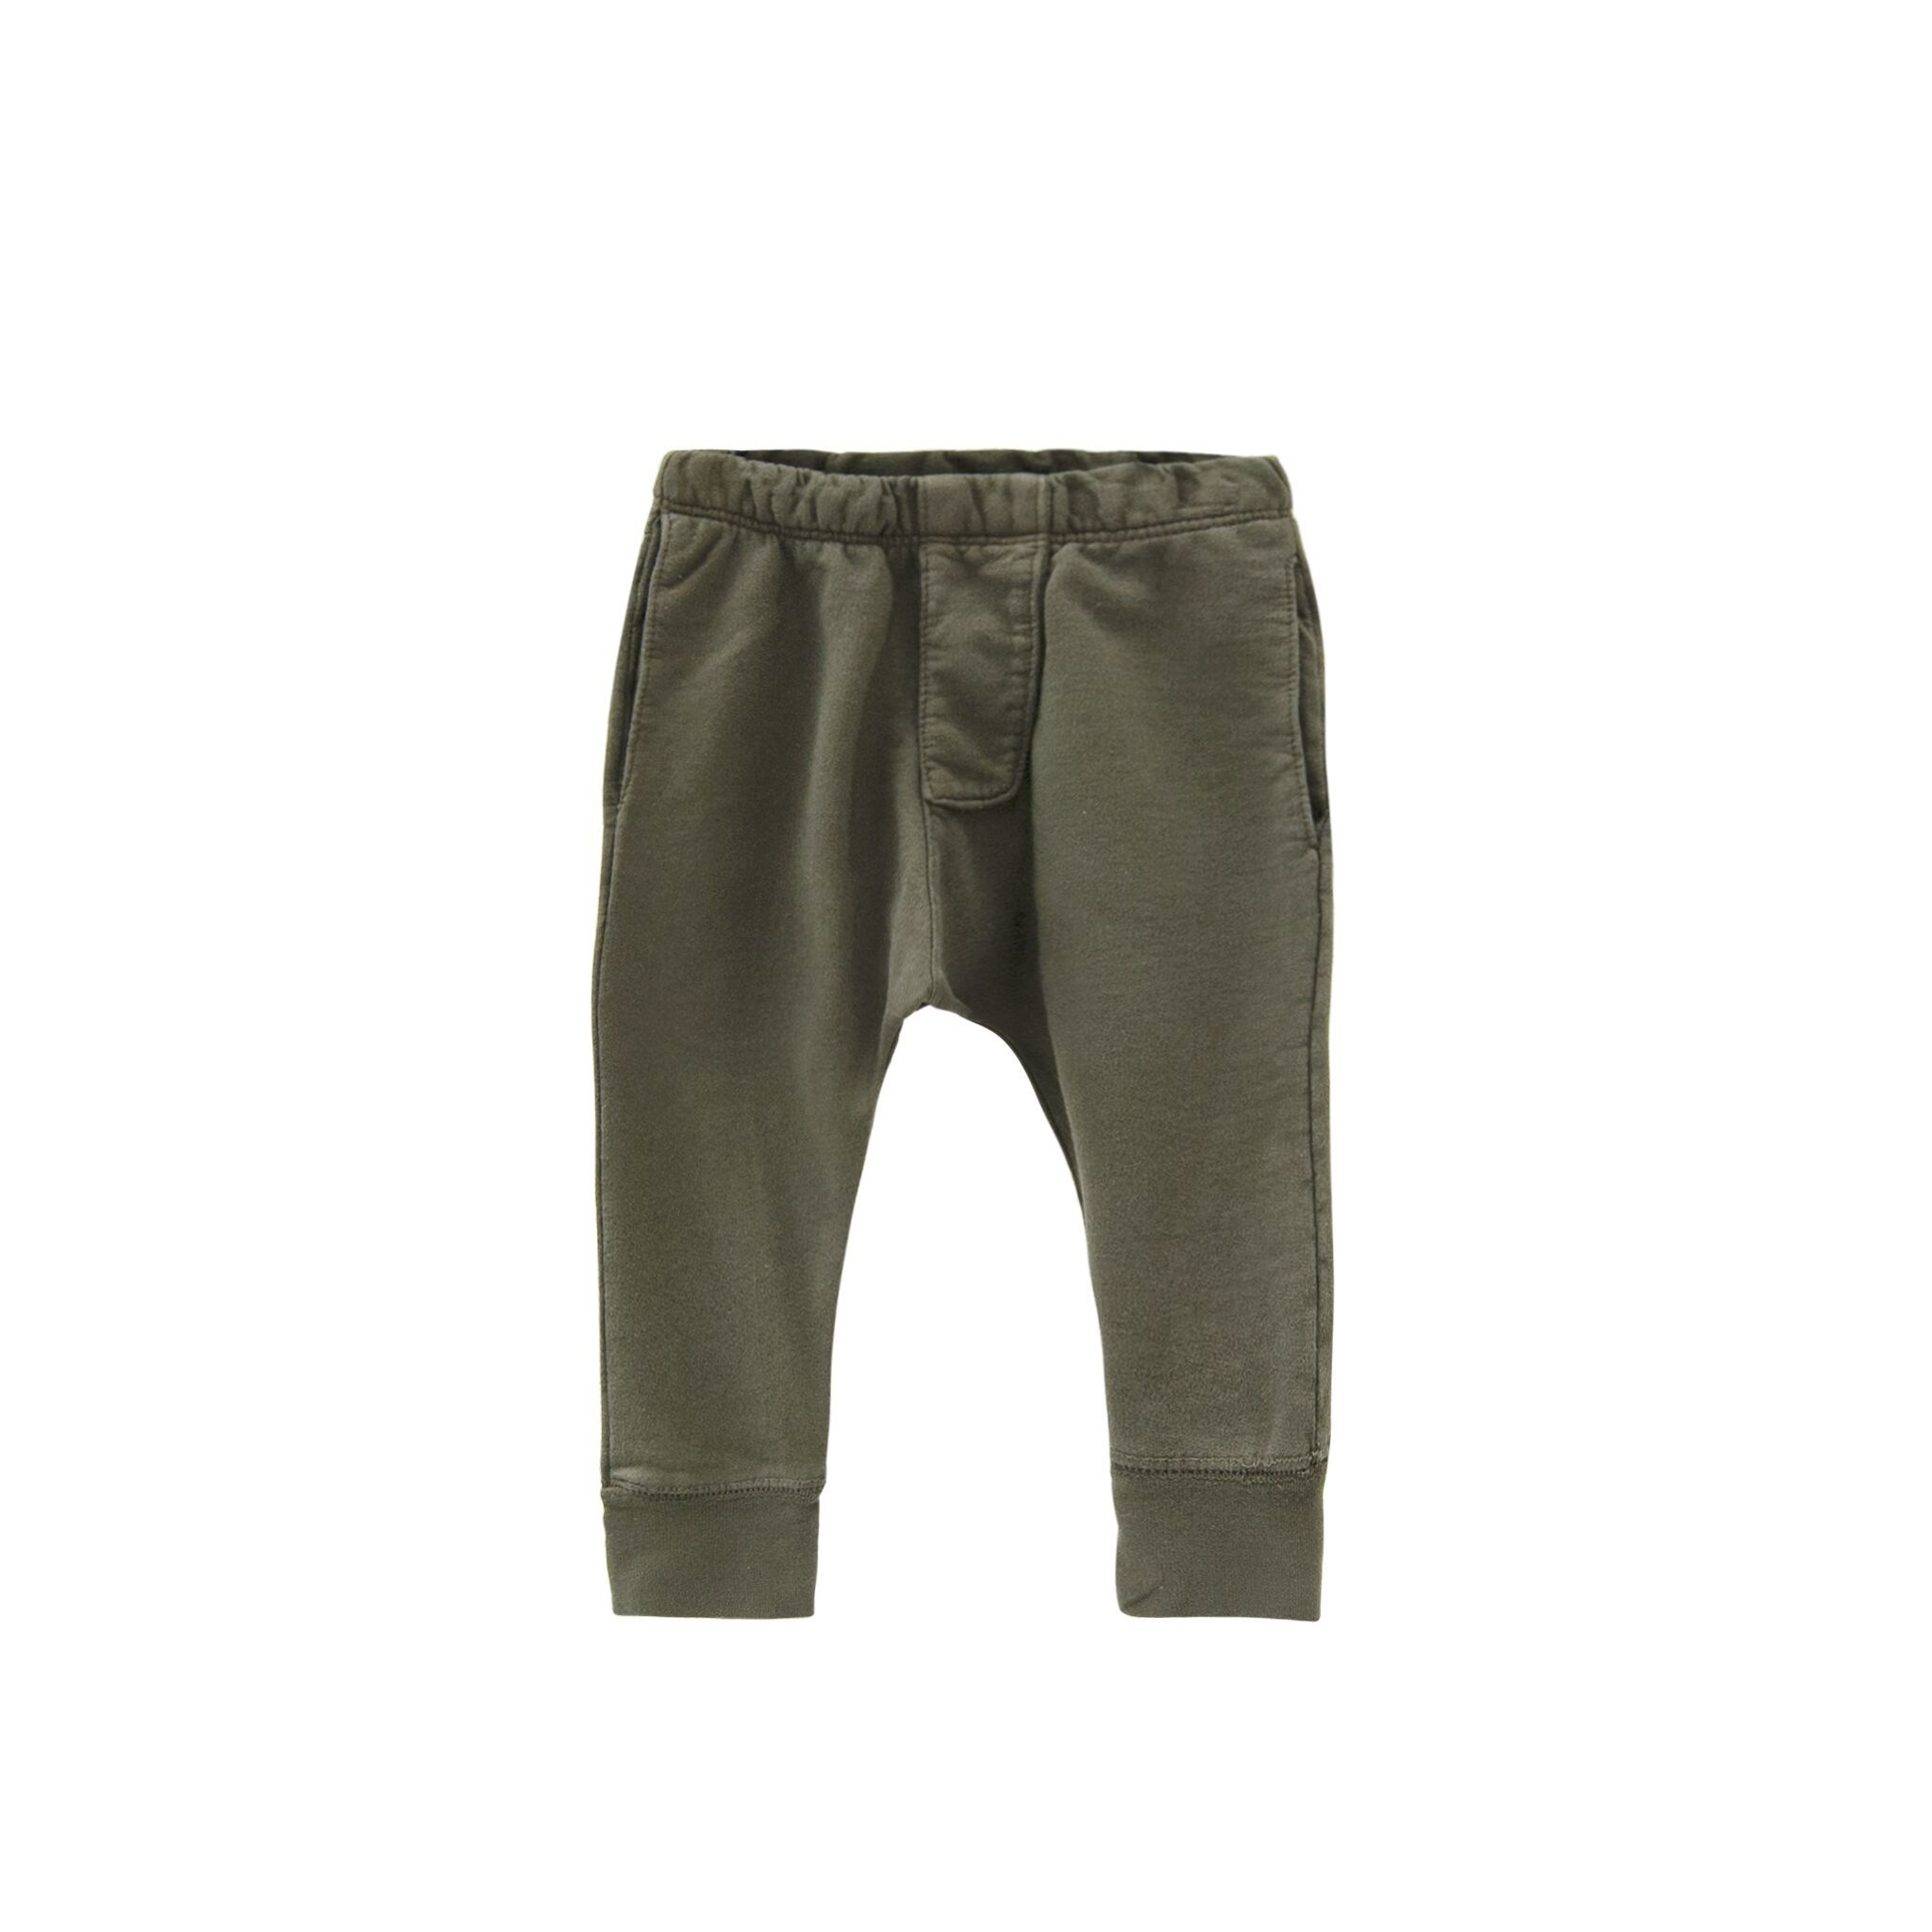 Go Gently Trouser Pockets Moss